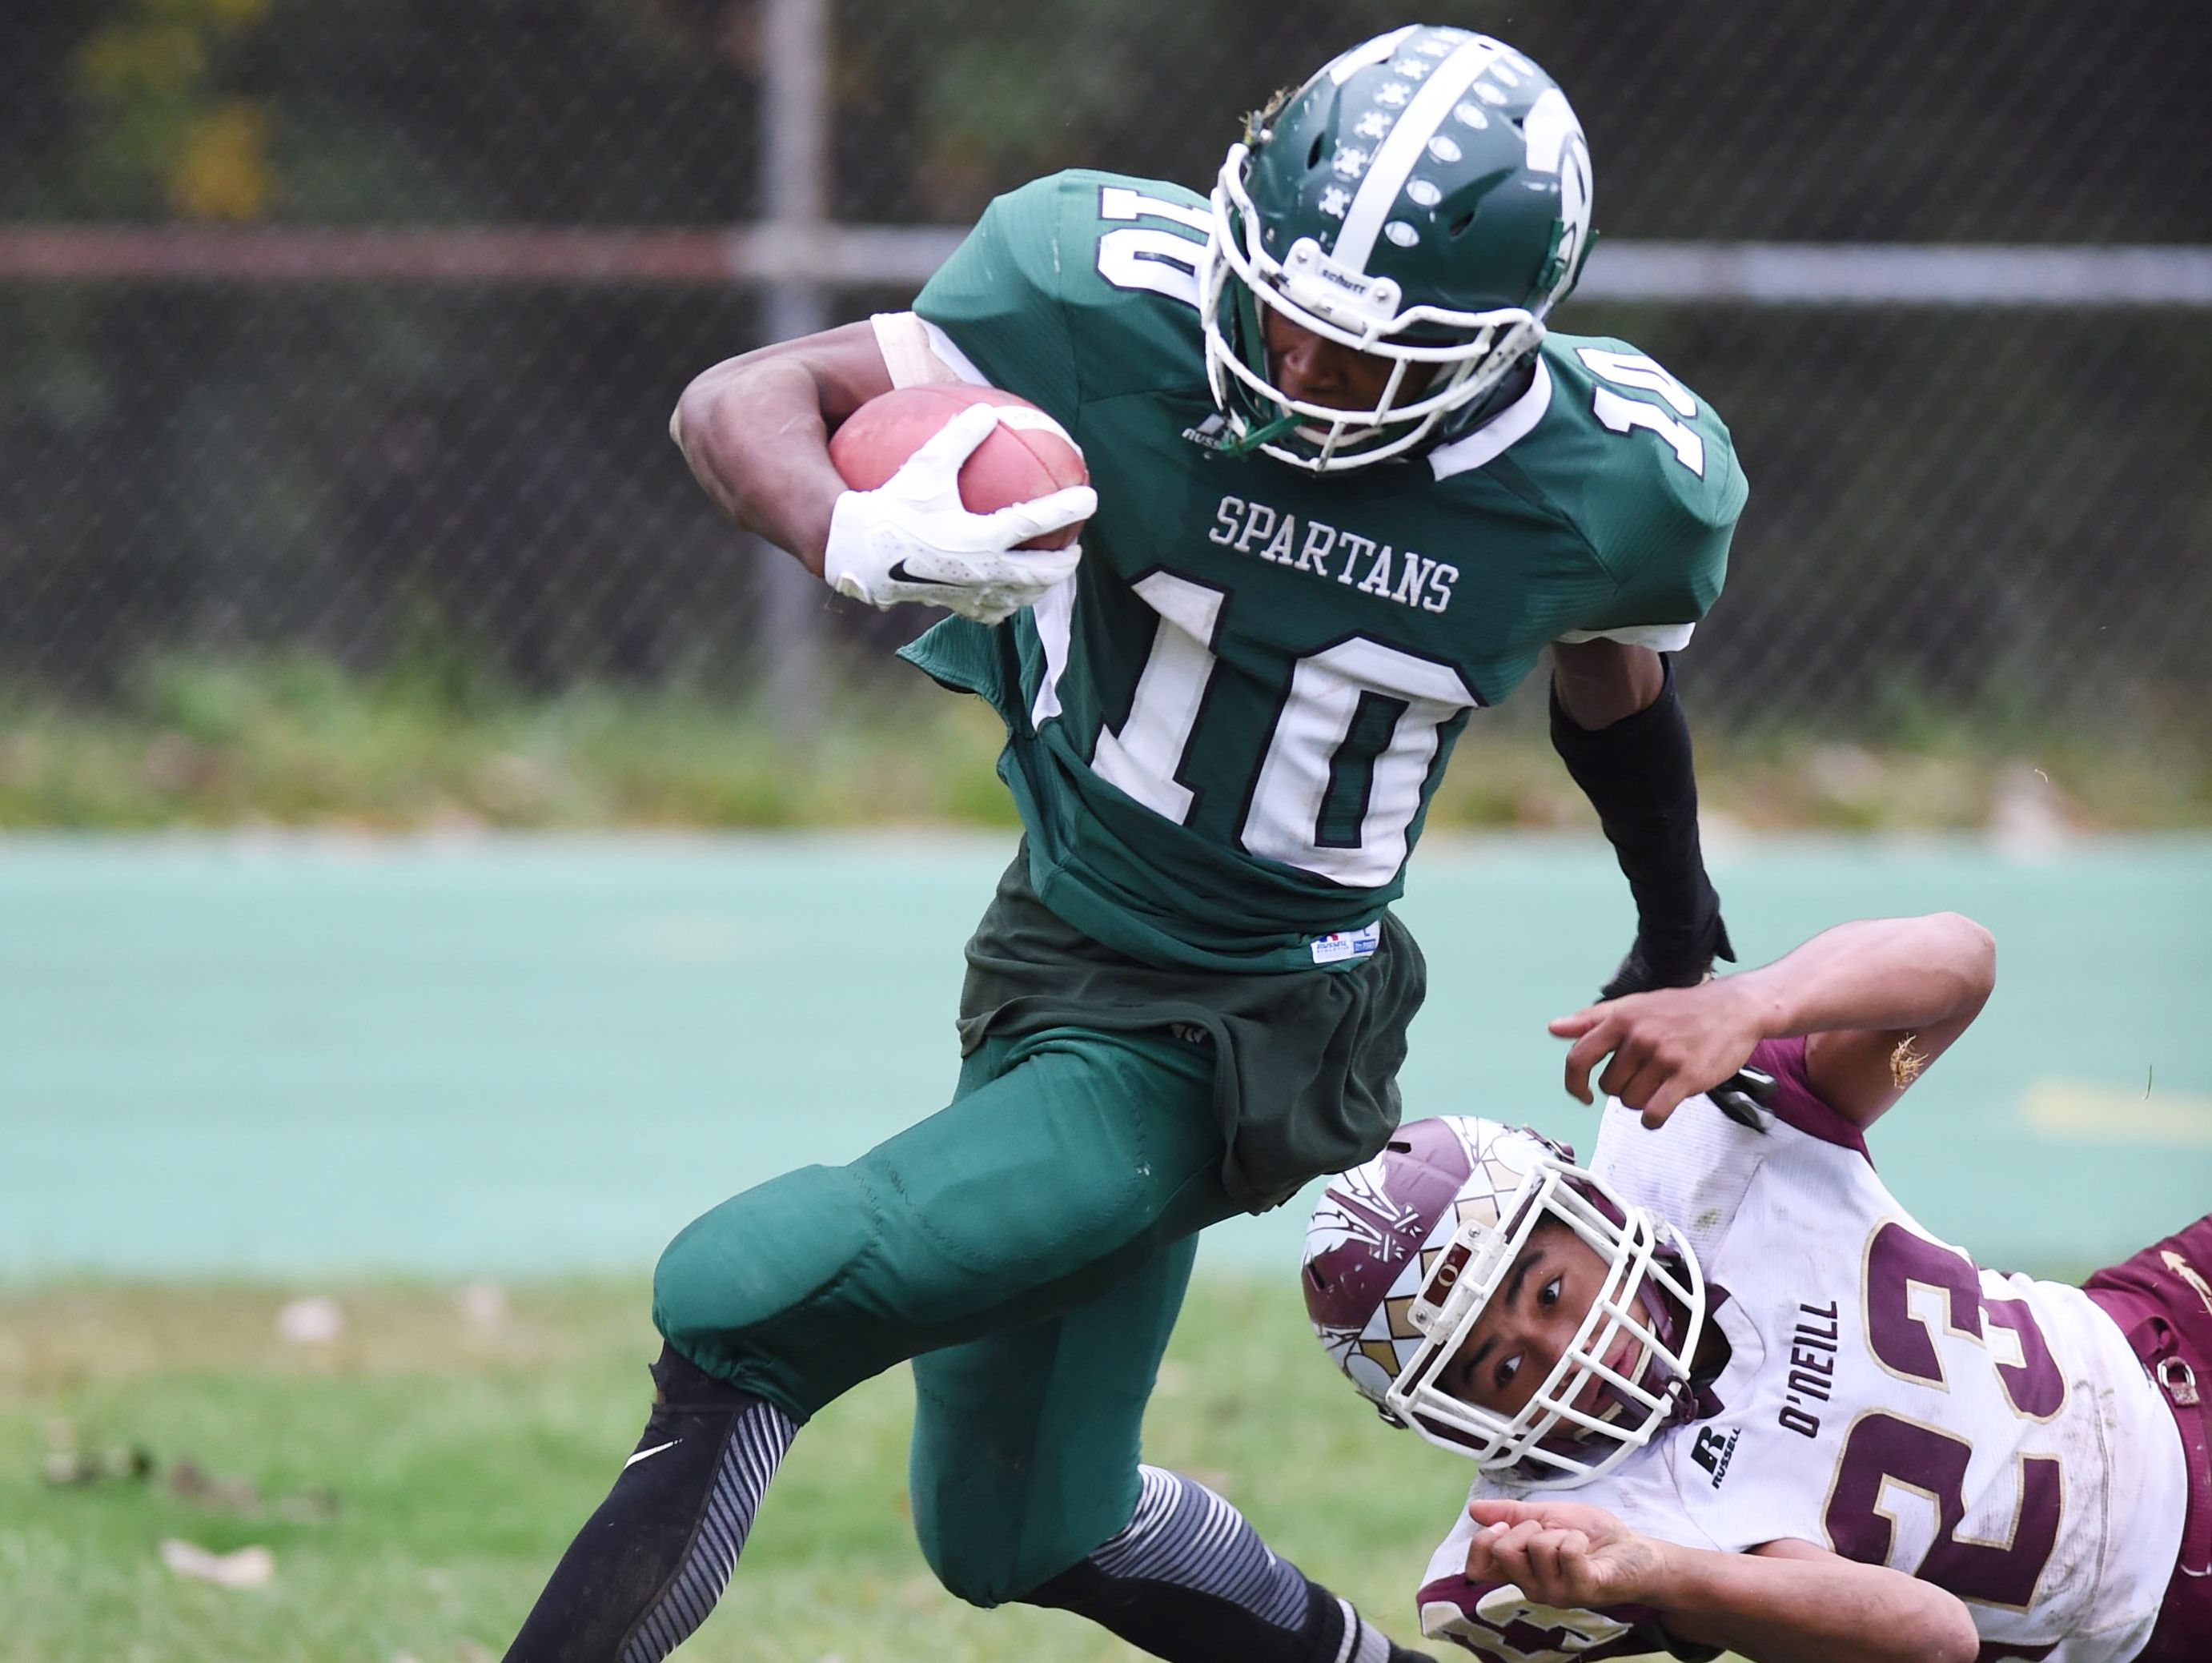 Spackenkill's Kabongo Barry outruns O'Neill's James Matautia to score a touchdown in the fourth quarter during Saturday's game at Spackenkill.